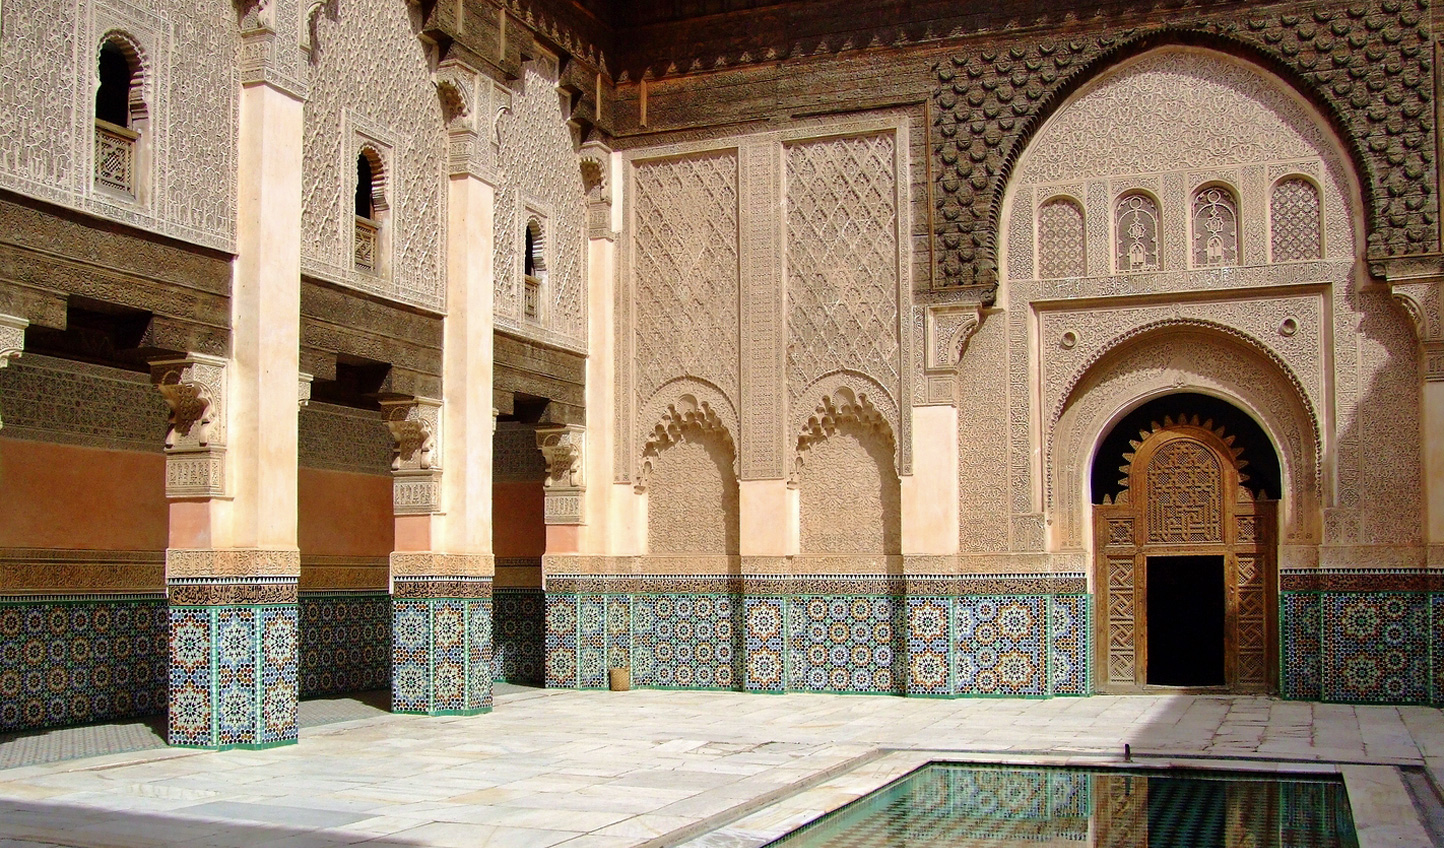 Get your dose of design inspiration in the beautiful riads that dot the country